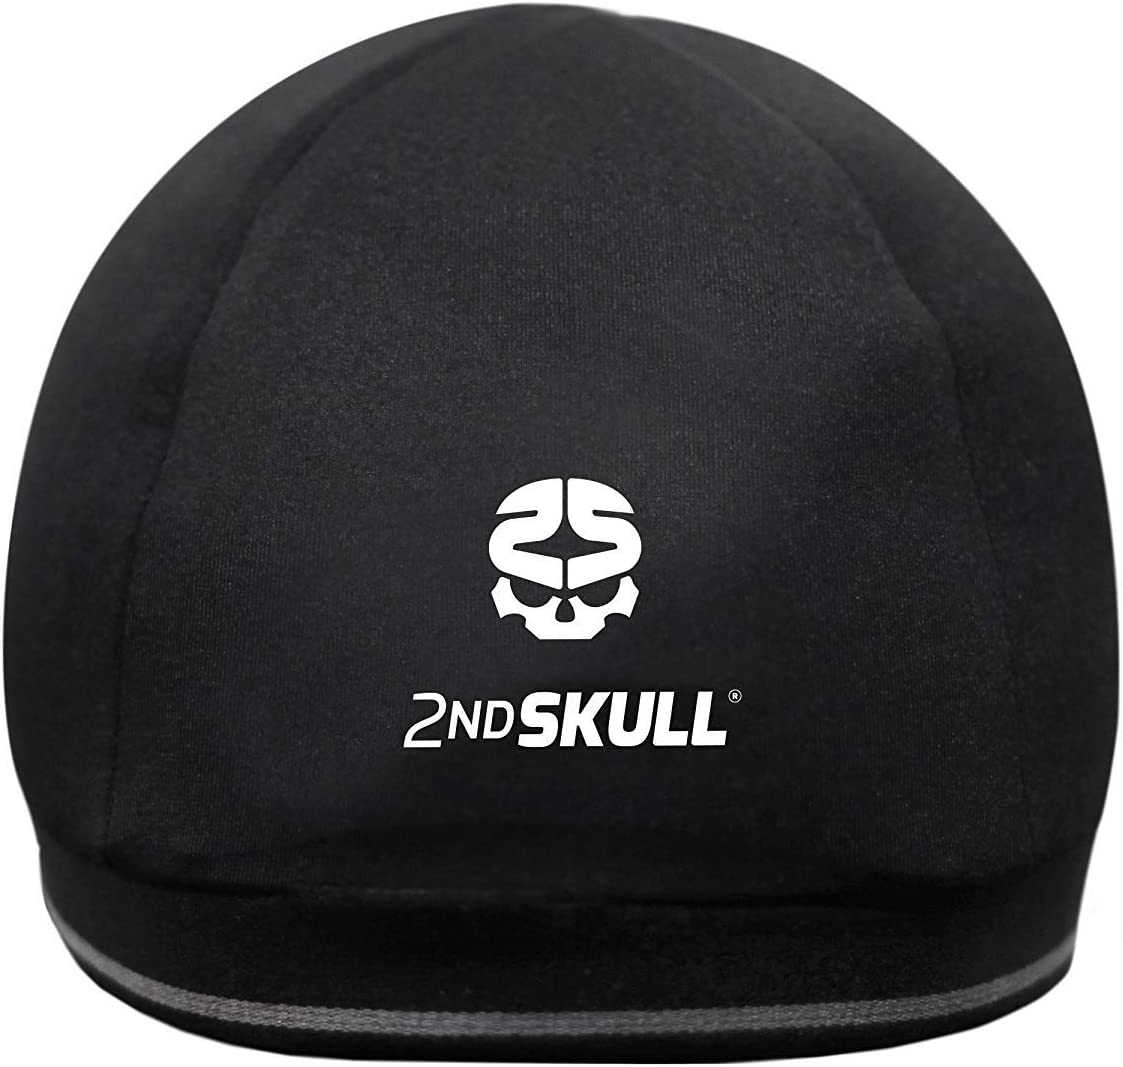 2nd Skull Protective Skull Cap - XRD Impact-Absorbing Technology, Fits Under Any Helmet : Sports & Outdoors